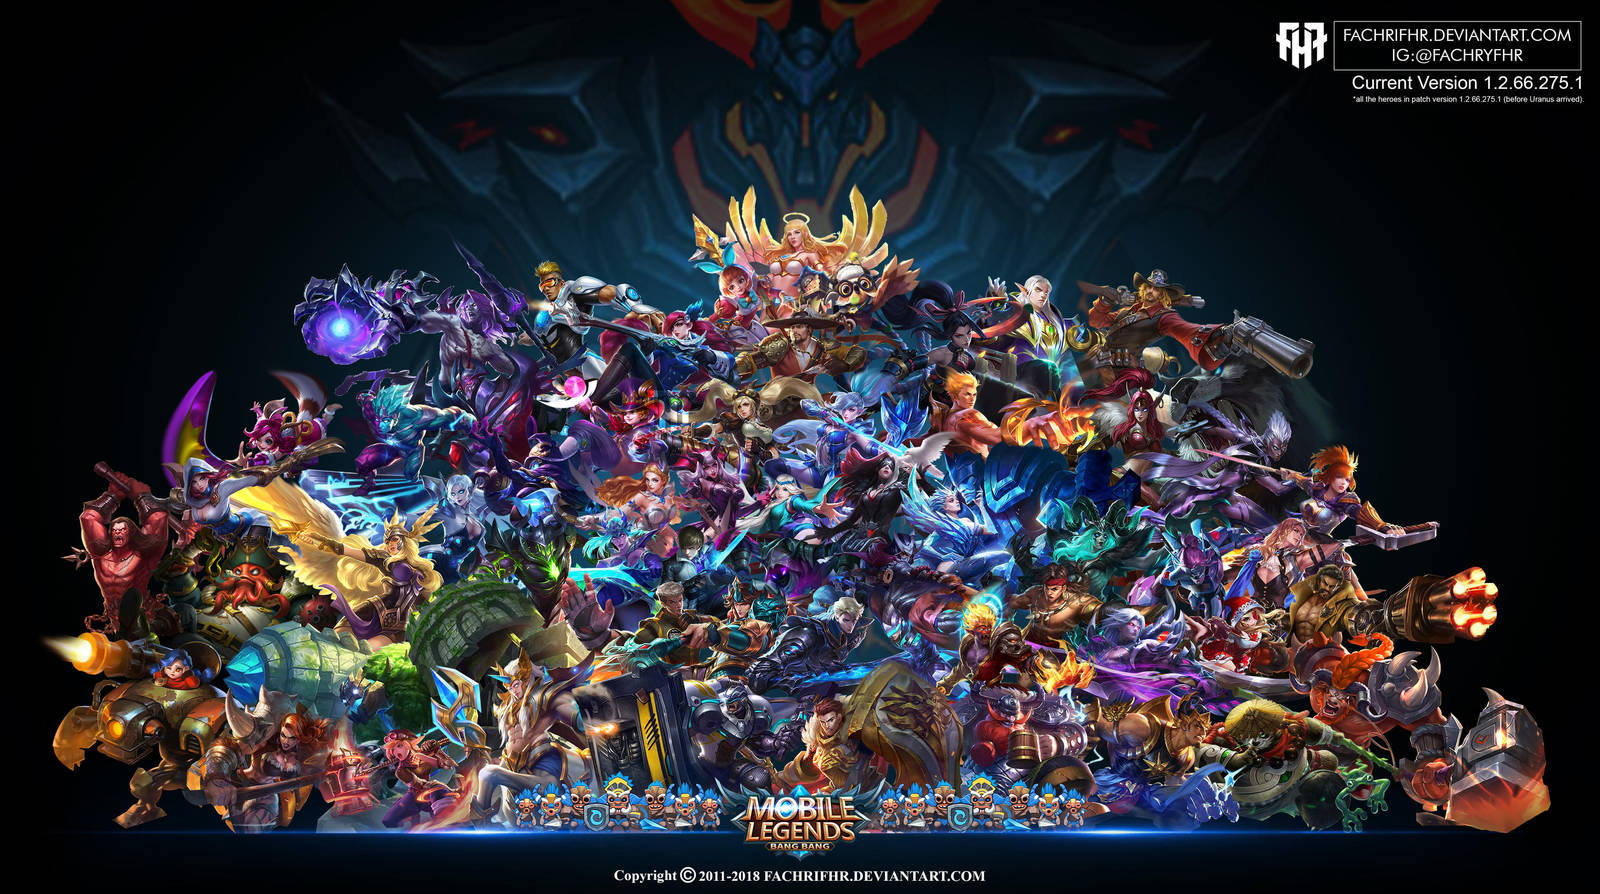 Wallpaper Desktoppc Mobile Legend Hd All Hero By Fachrifhr On